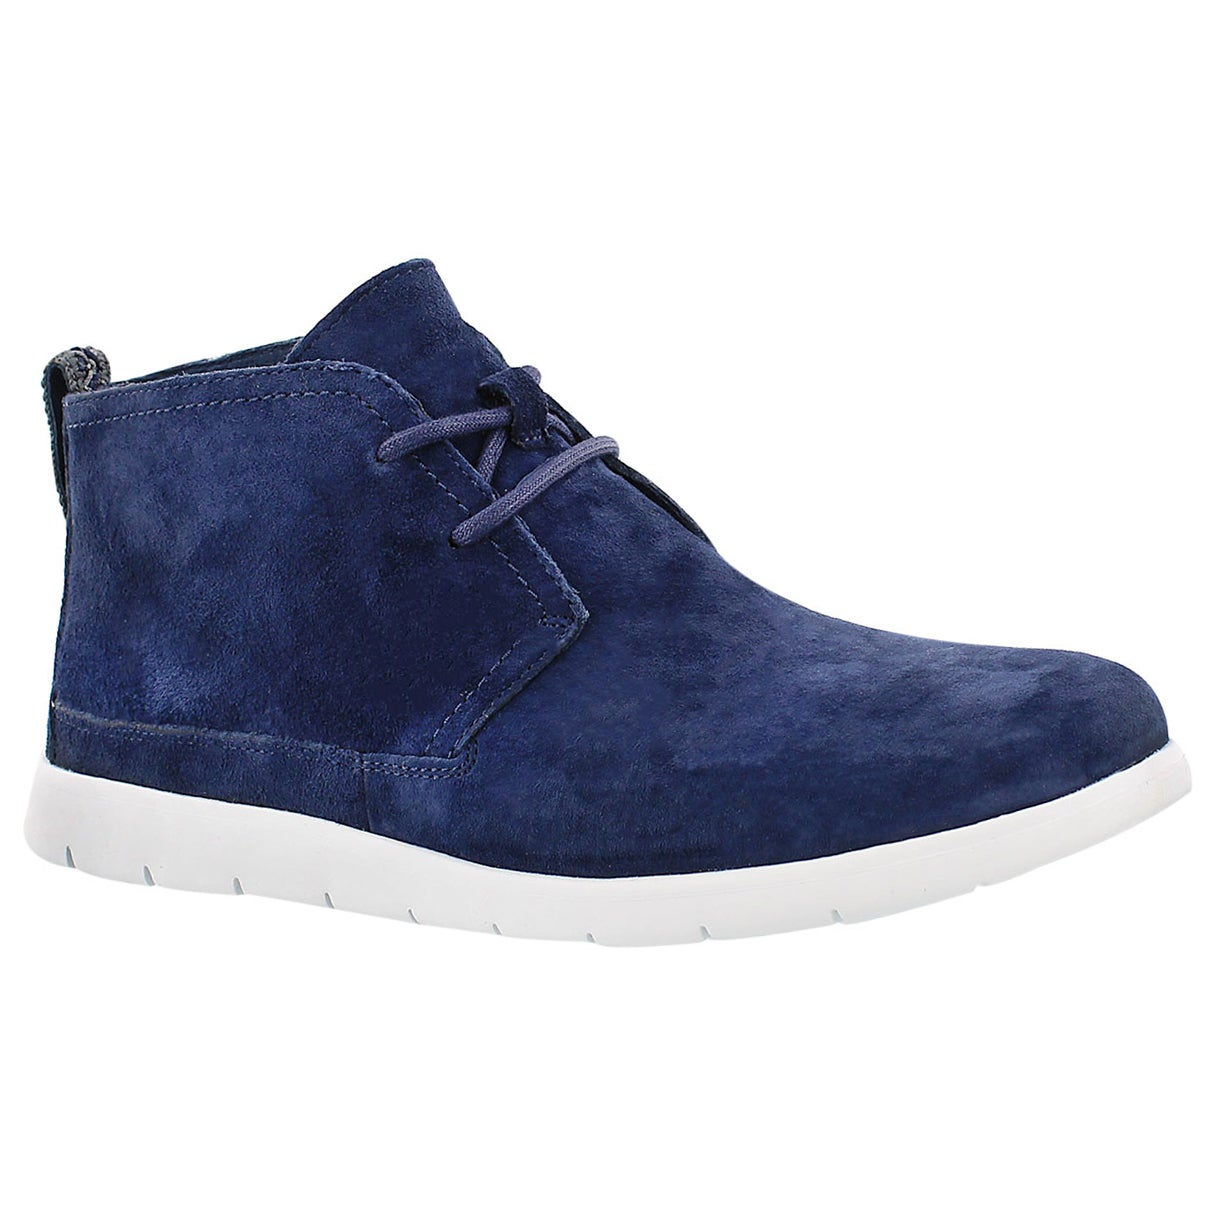 Men's FREAMON navy casual chukka boots